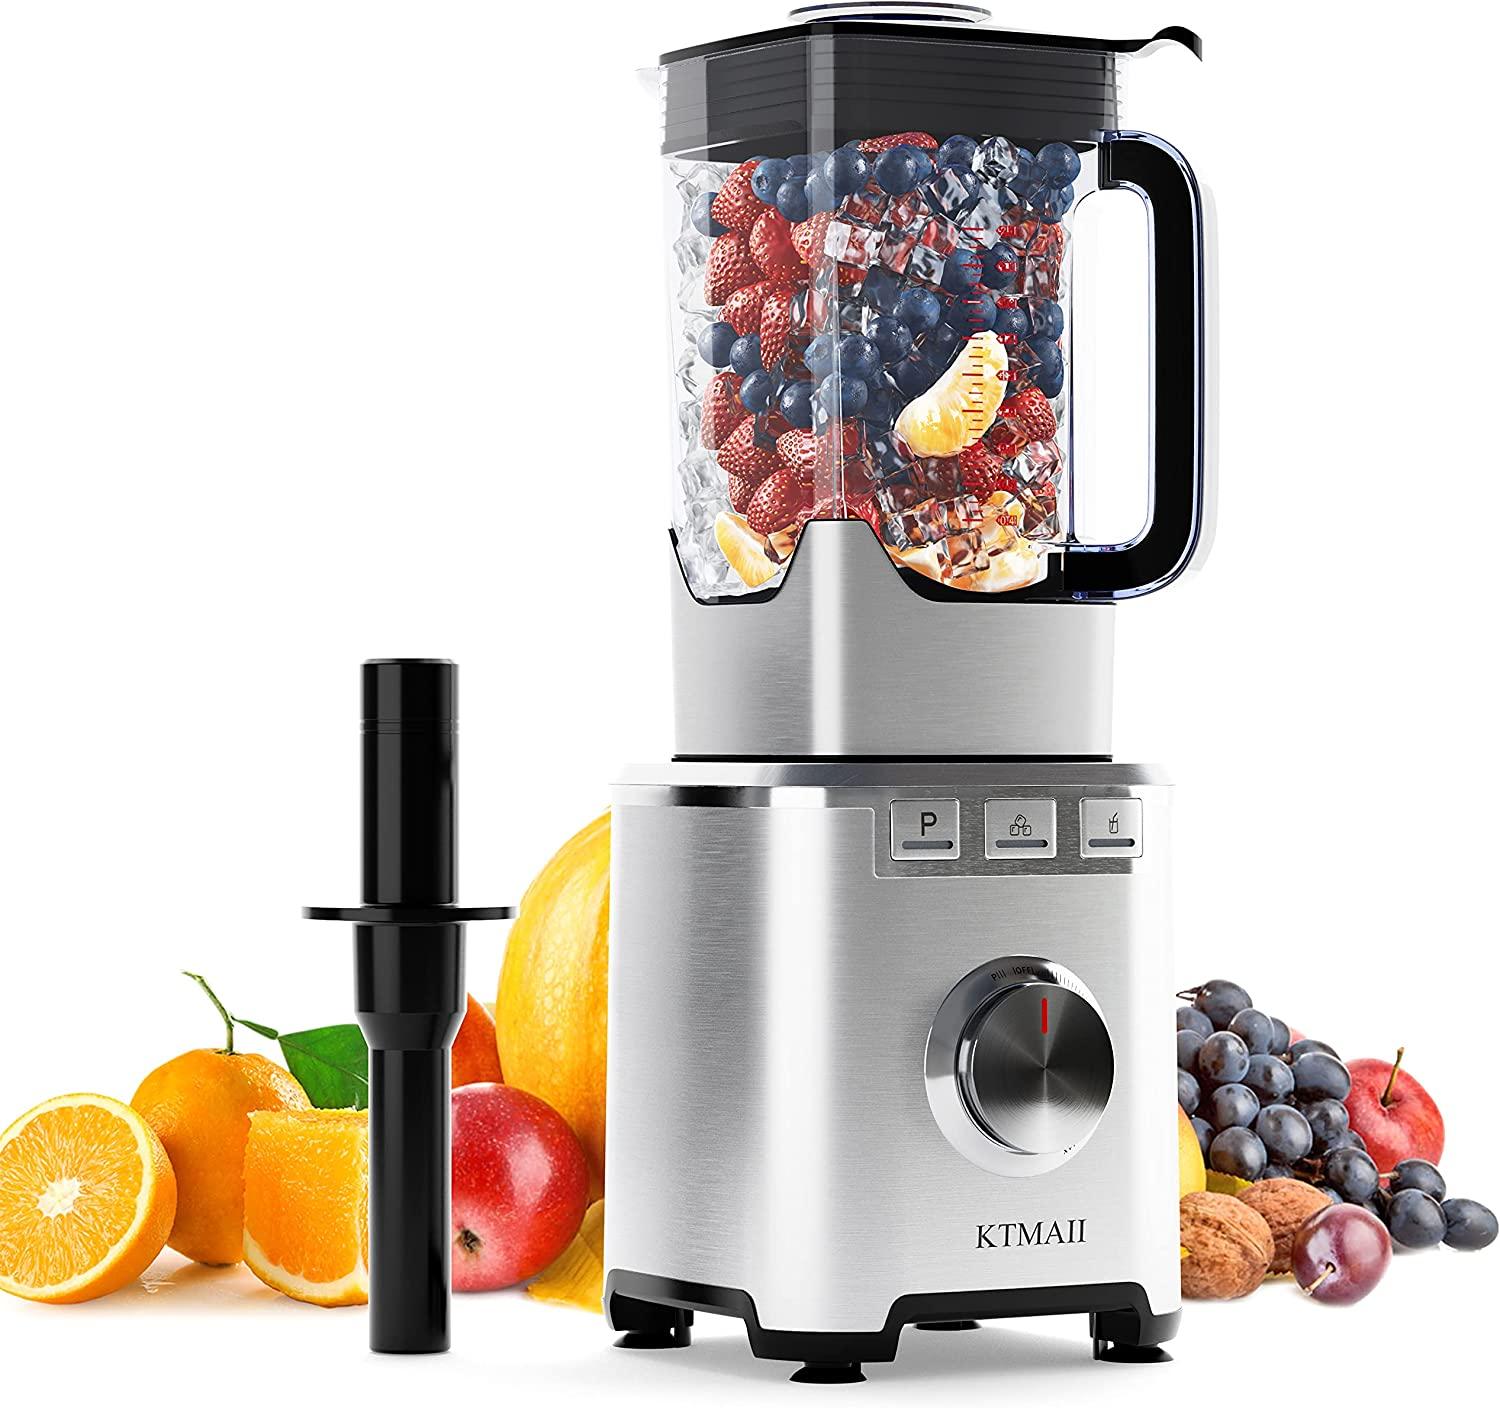 KTMAII Countertop Smoothie Blender, 1800W Professional High Speed Blender with 68oz BPA-Free Pitcher, 6 Stainless Steel Blades, 3 Blending Presets Programs for Smoothies, Shakes, Ice Crushing and Frozen Fruits, Silver